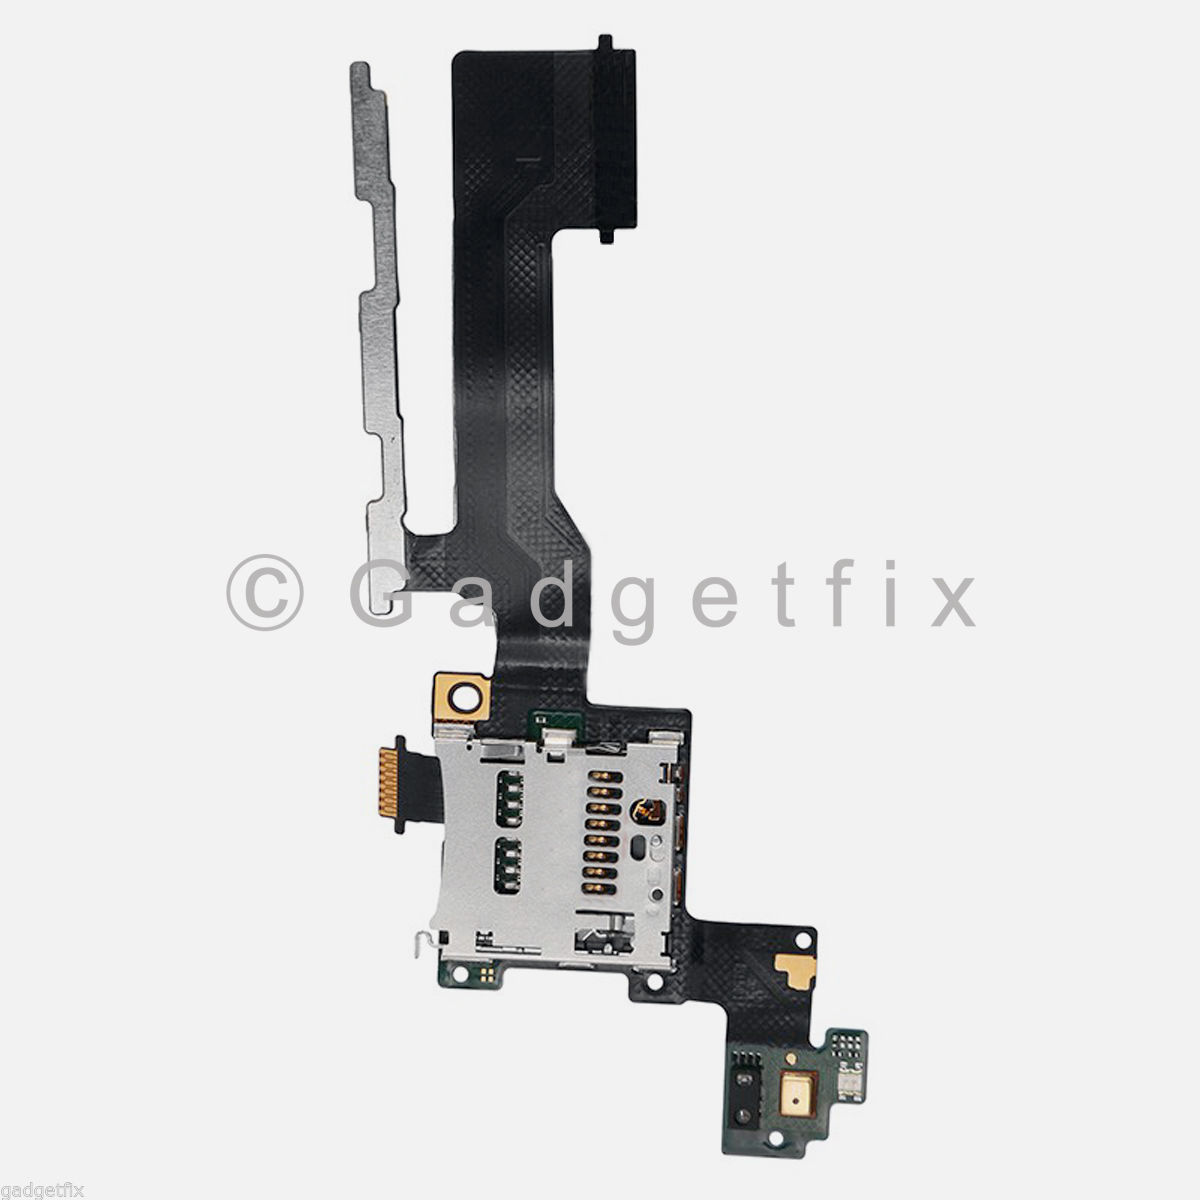 Us htc one m9 sd memory card tray holder slot power volume button flex - Htc One M9 Headphone Audio Jack Charger Charging Micro Usb